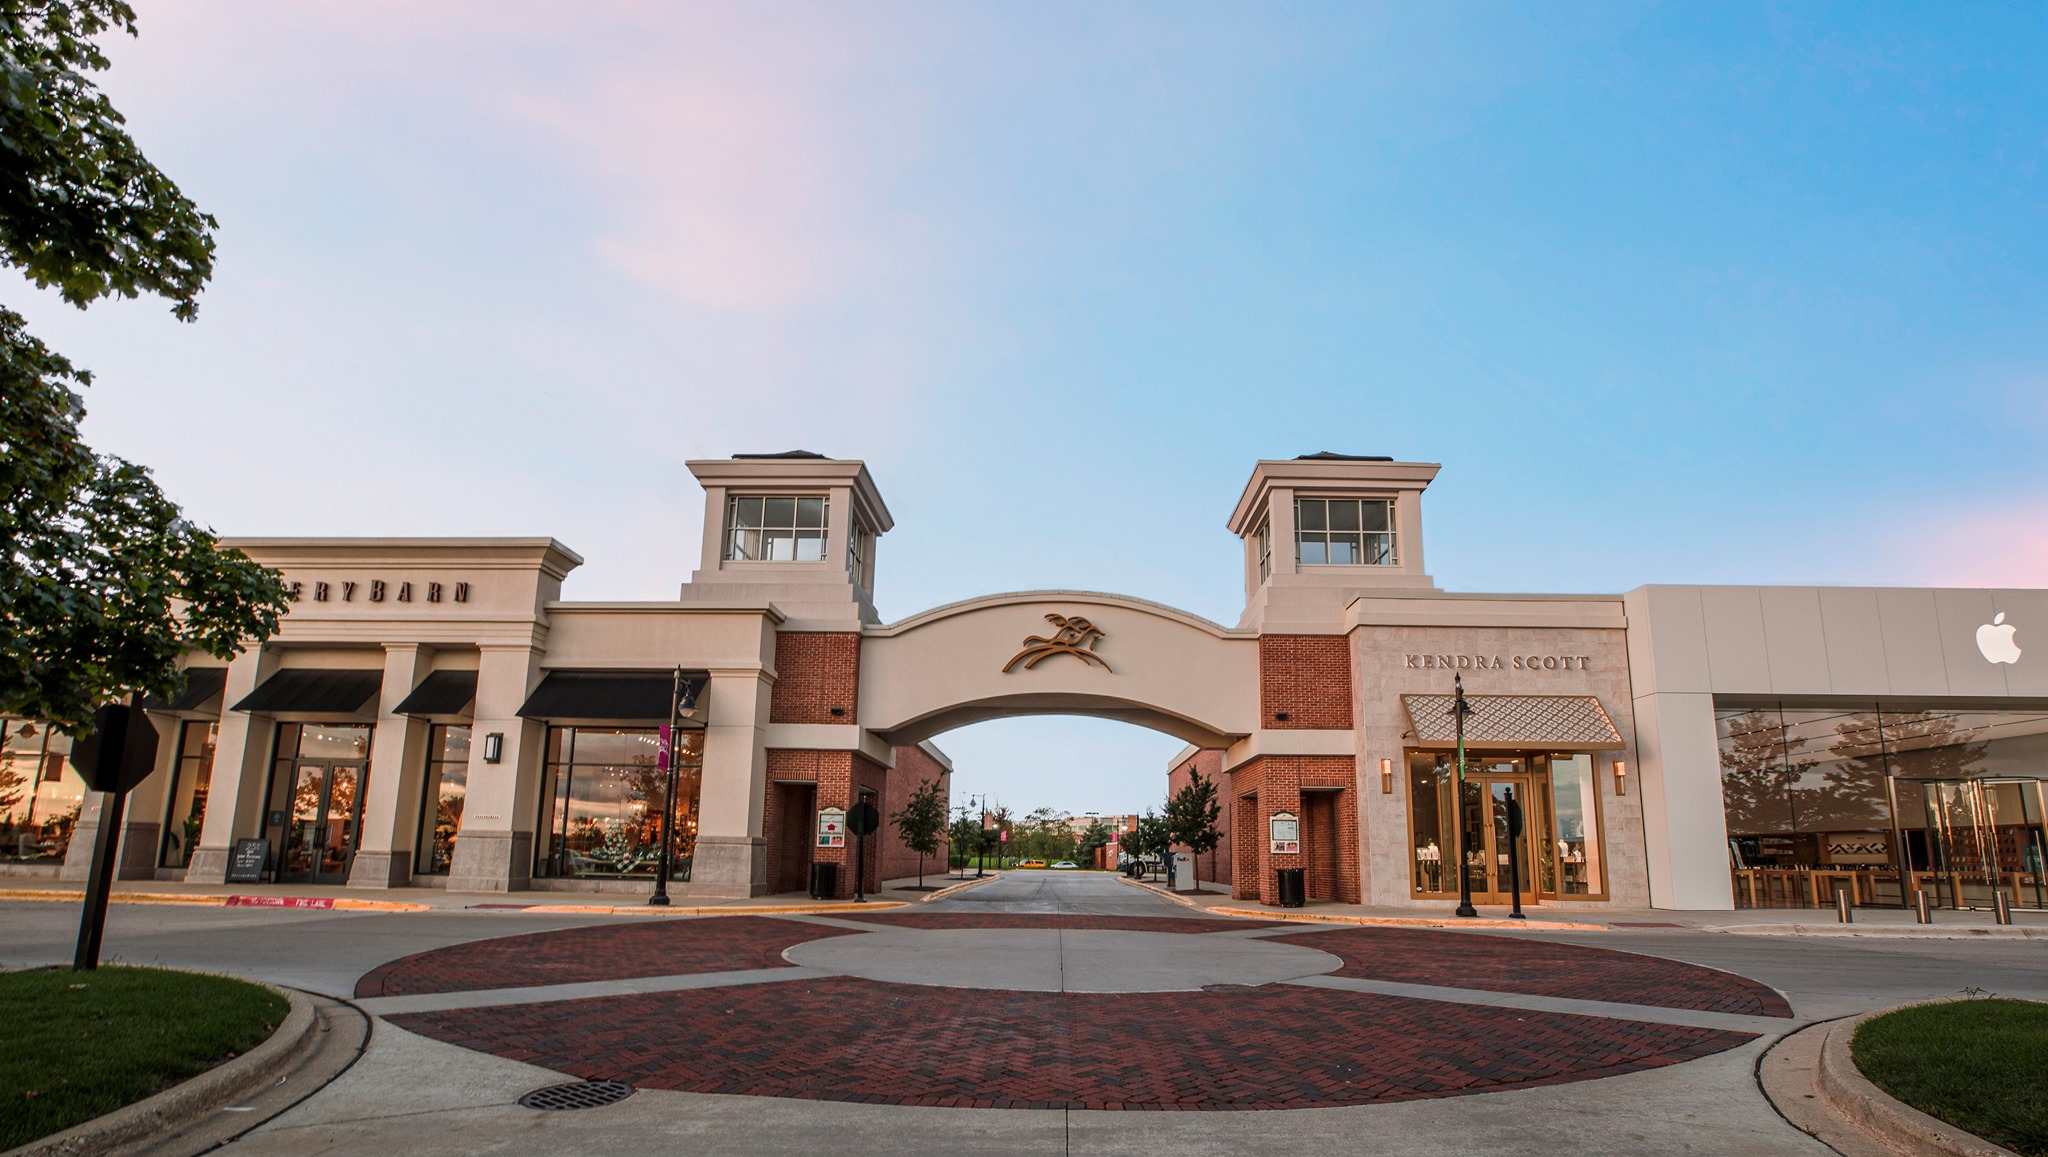 Deer Park Town Center - Must have Sales